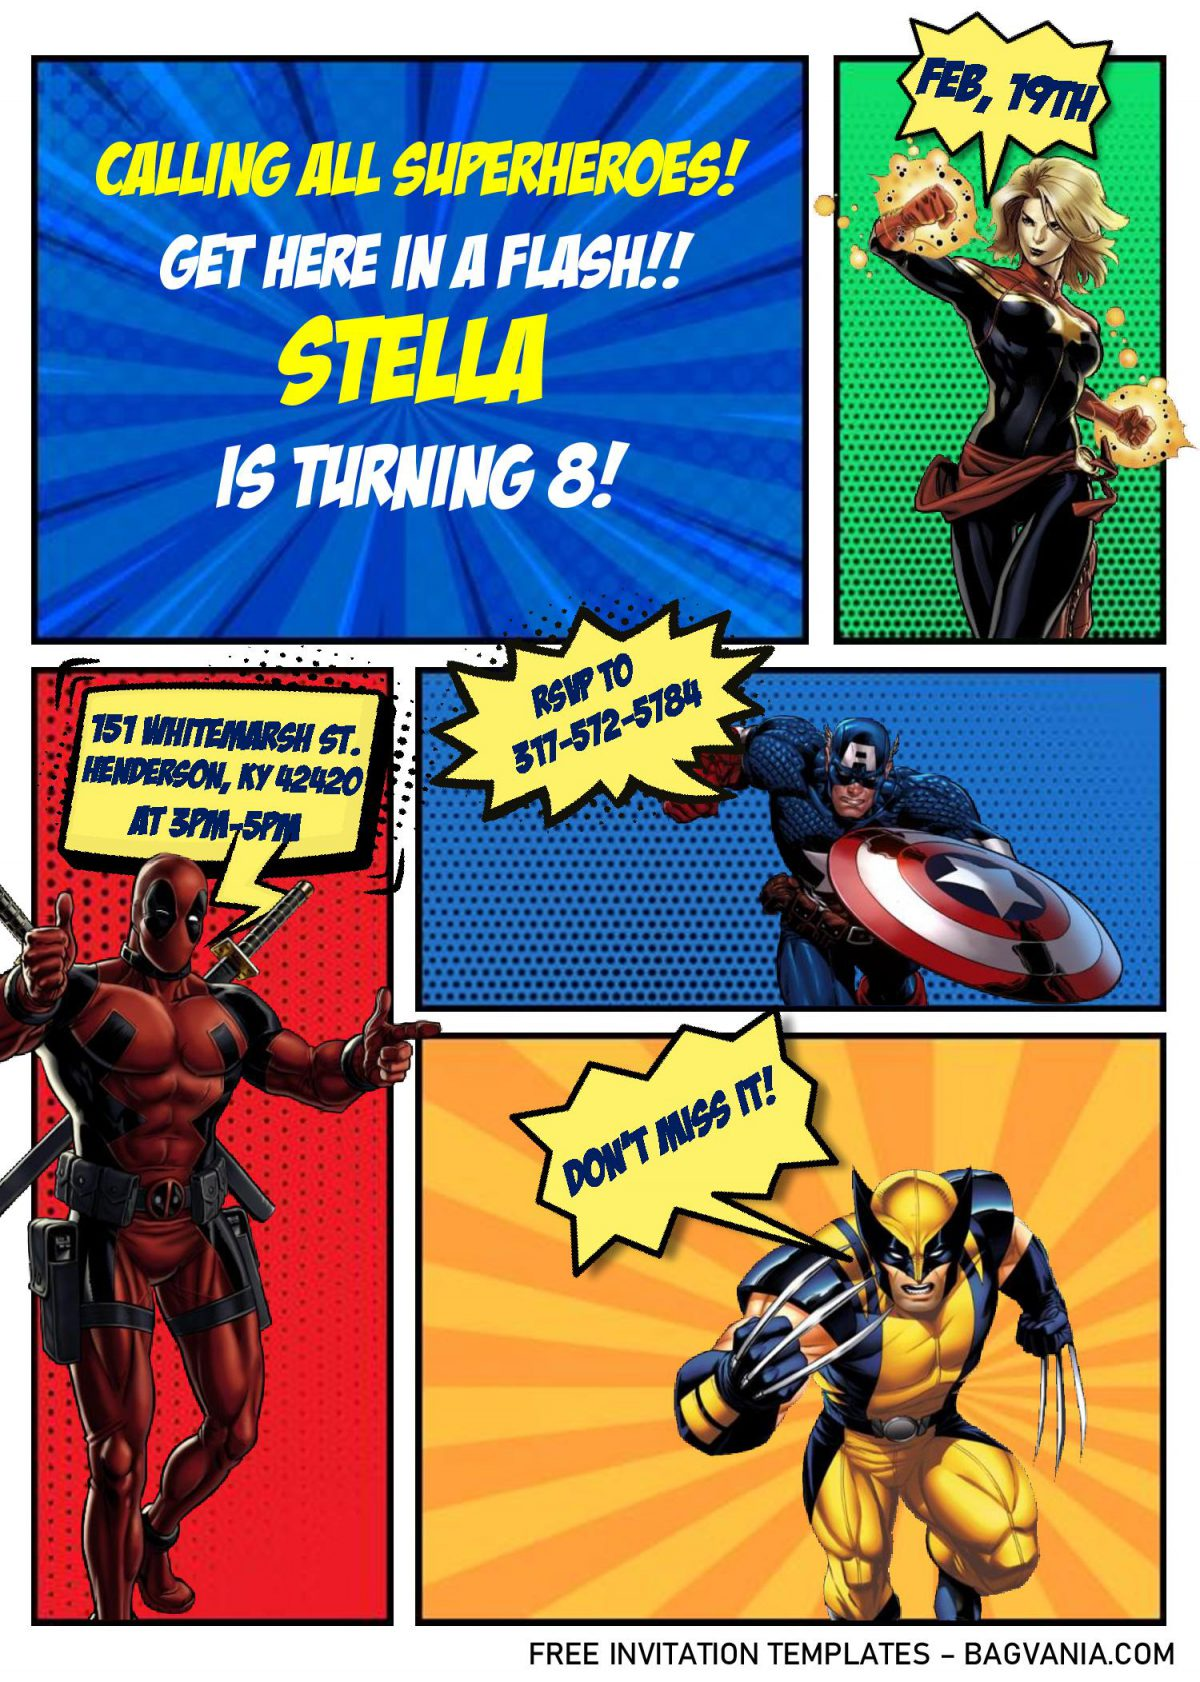 Superhero Comic Invitation Templates - Editable With MS Word